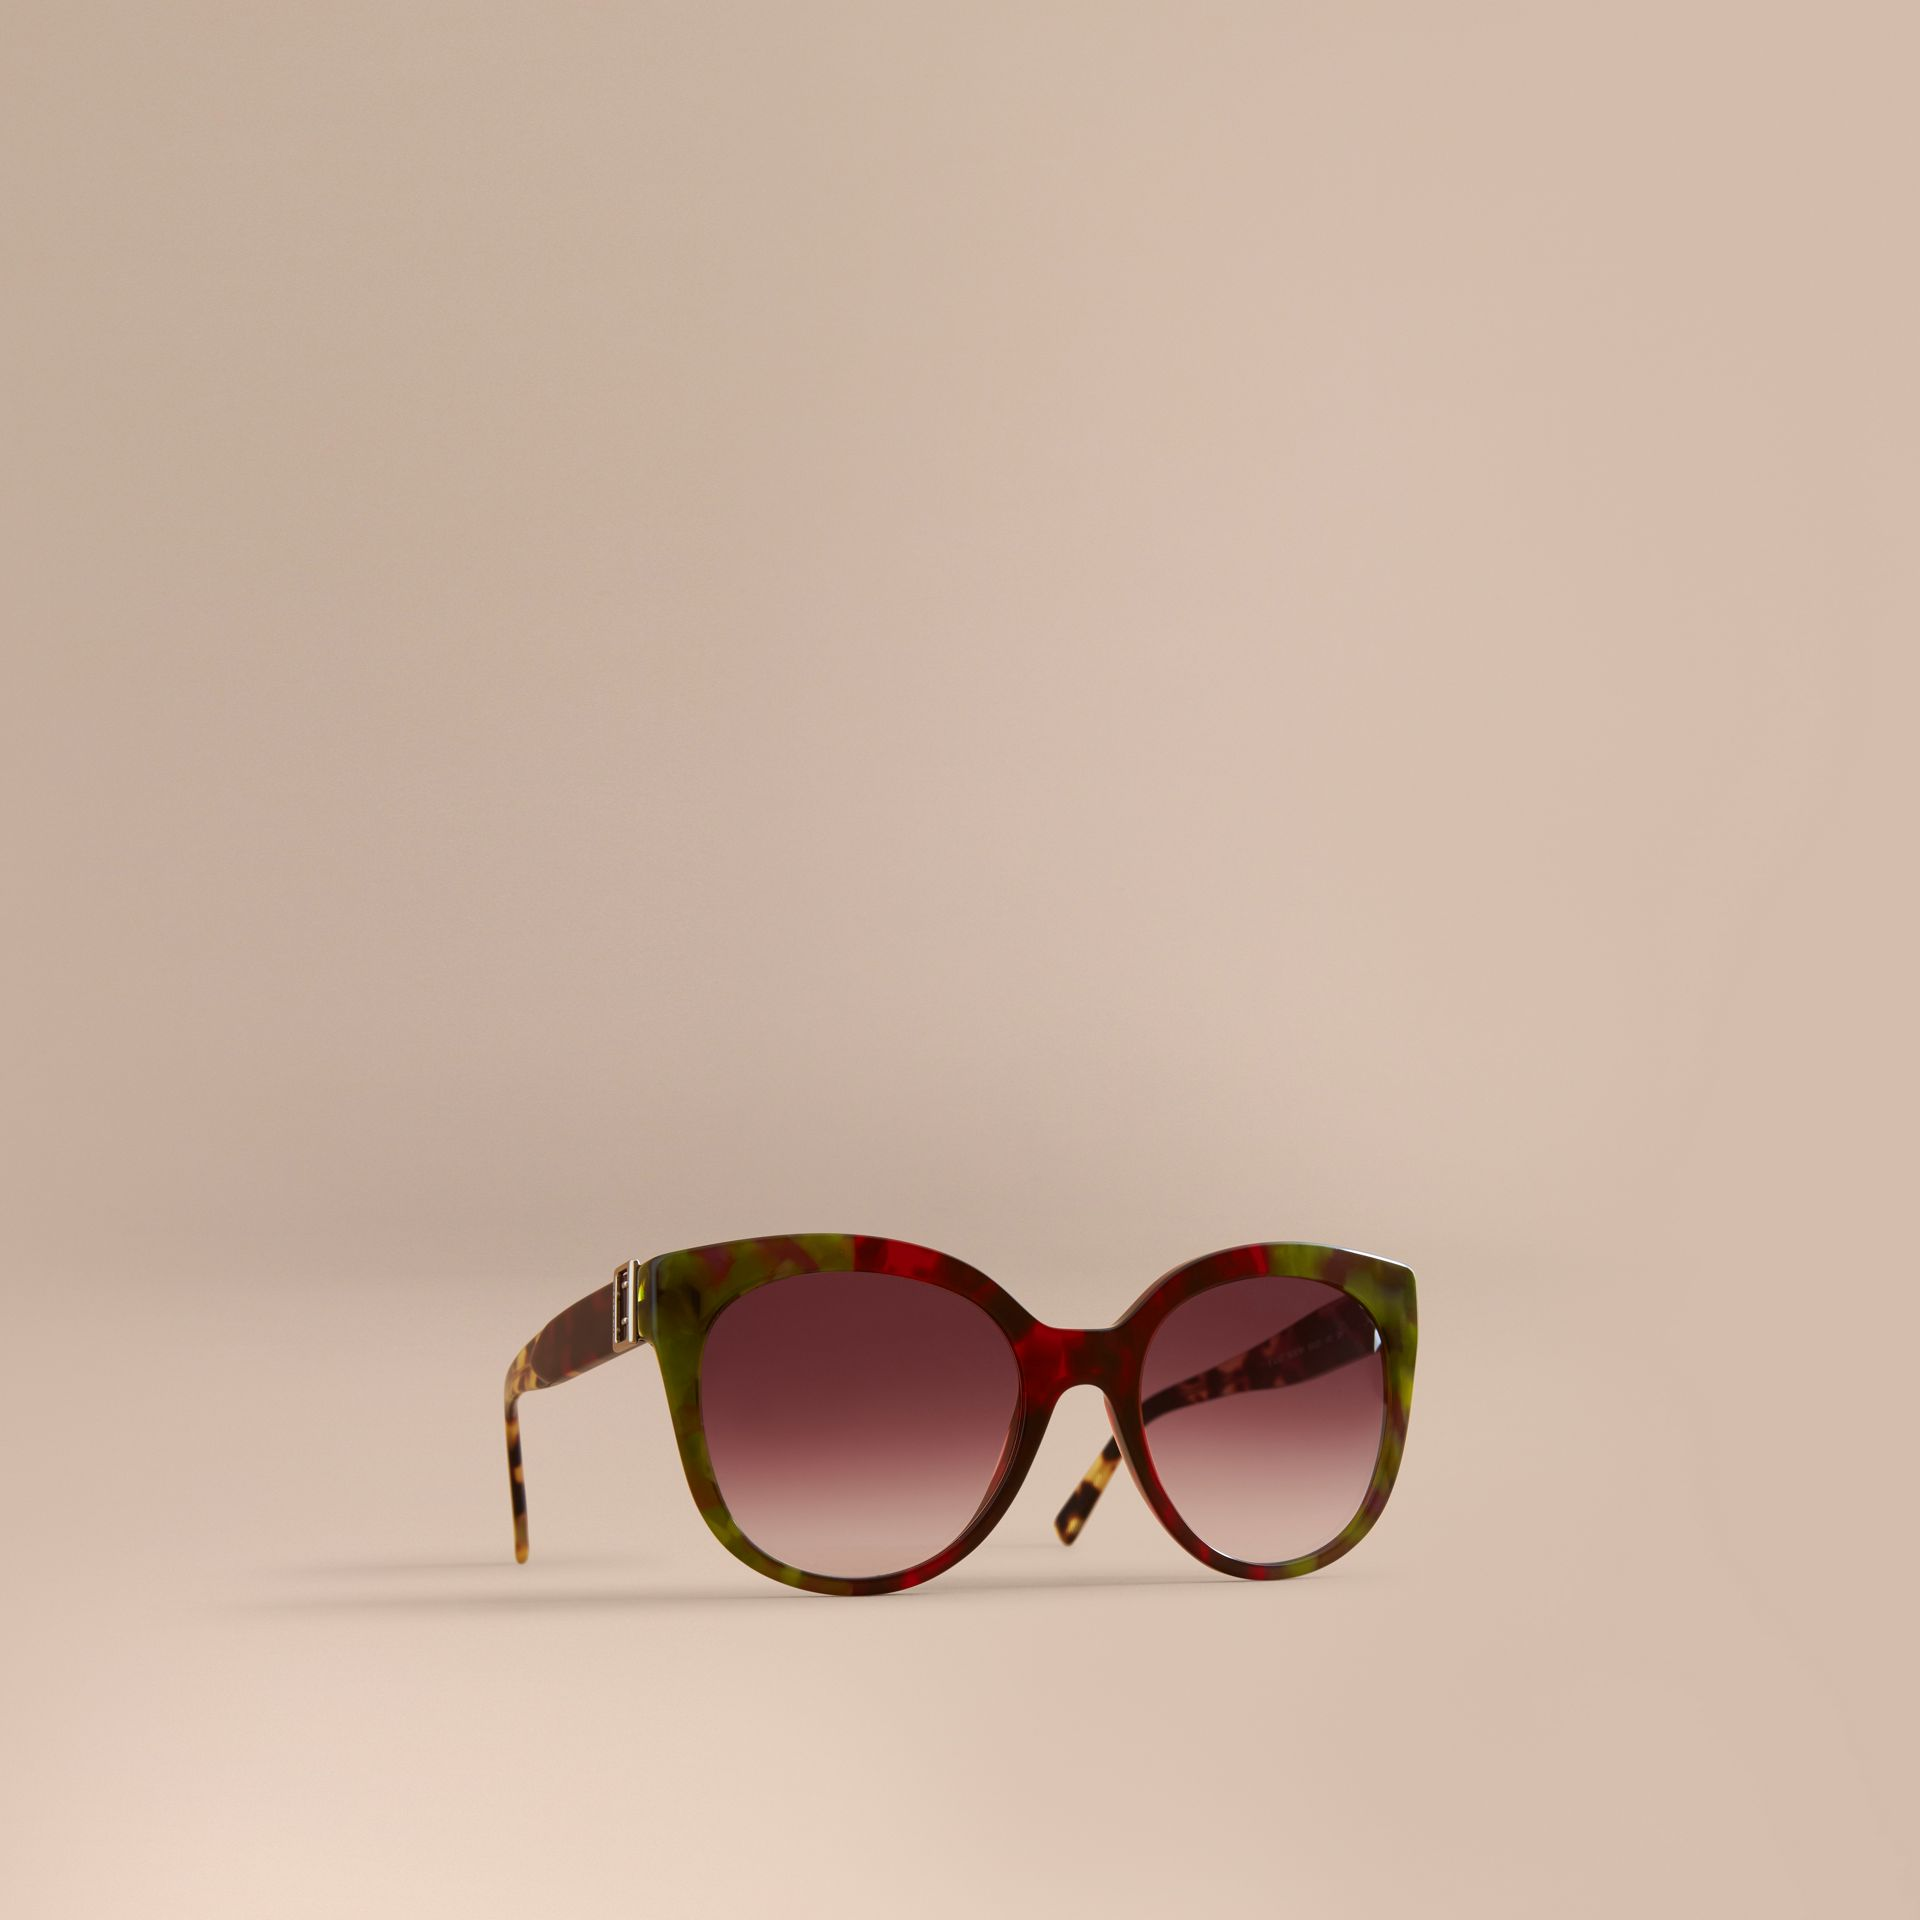 Buckle Detail Cat-eye Frame Sunglasses in Cardinal Red - Women | Burberry United Kingdom - gallery image 0